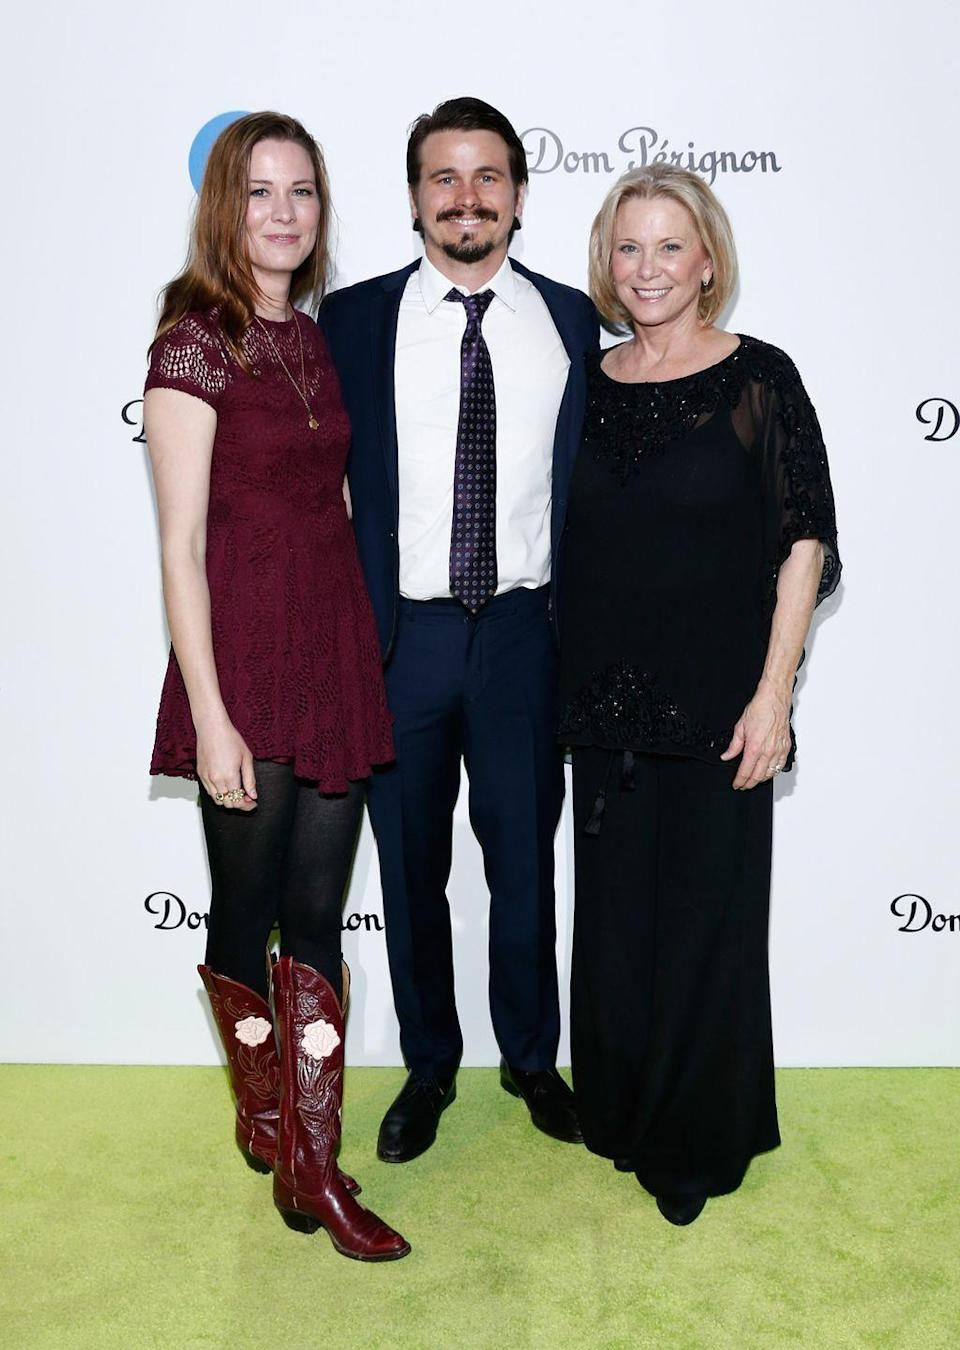 <p>When Jason Ritter began acting, he was pegged as his father, John Ritter's, mini-me. But there's another lookalike in the family. Carly Ritter, Jason's younger sister, shares the same nose and eyes as her brother. </p>